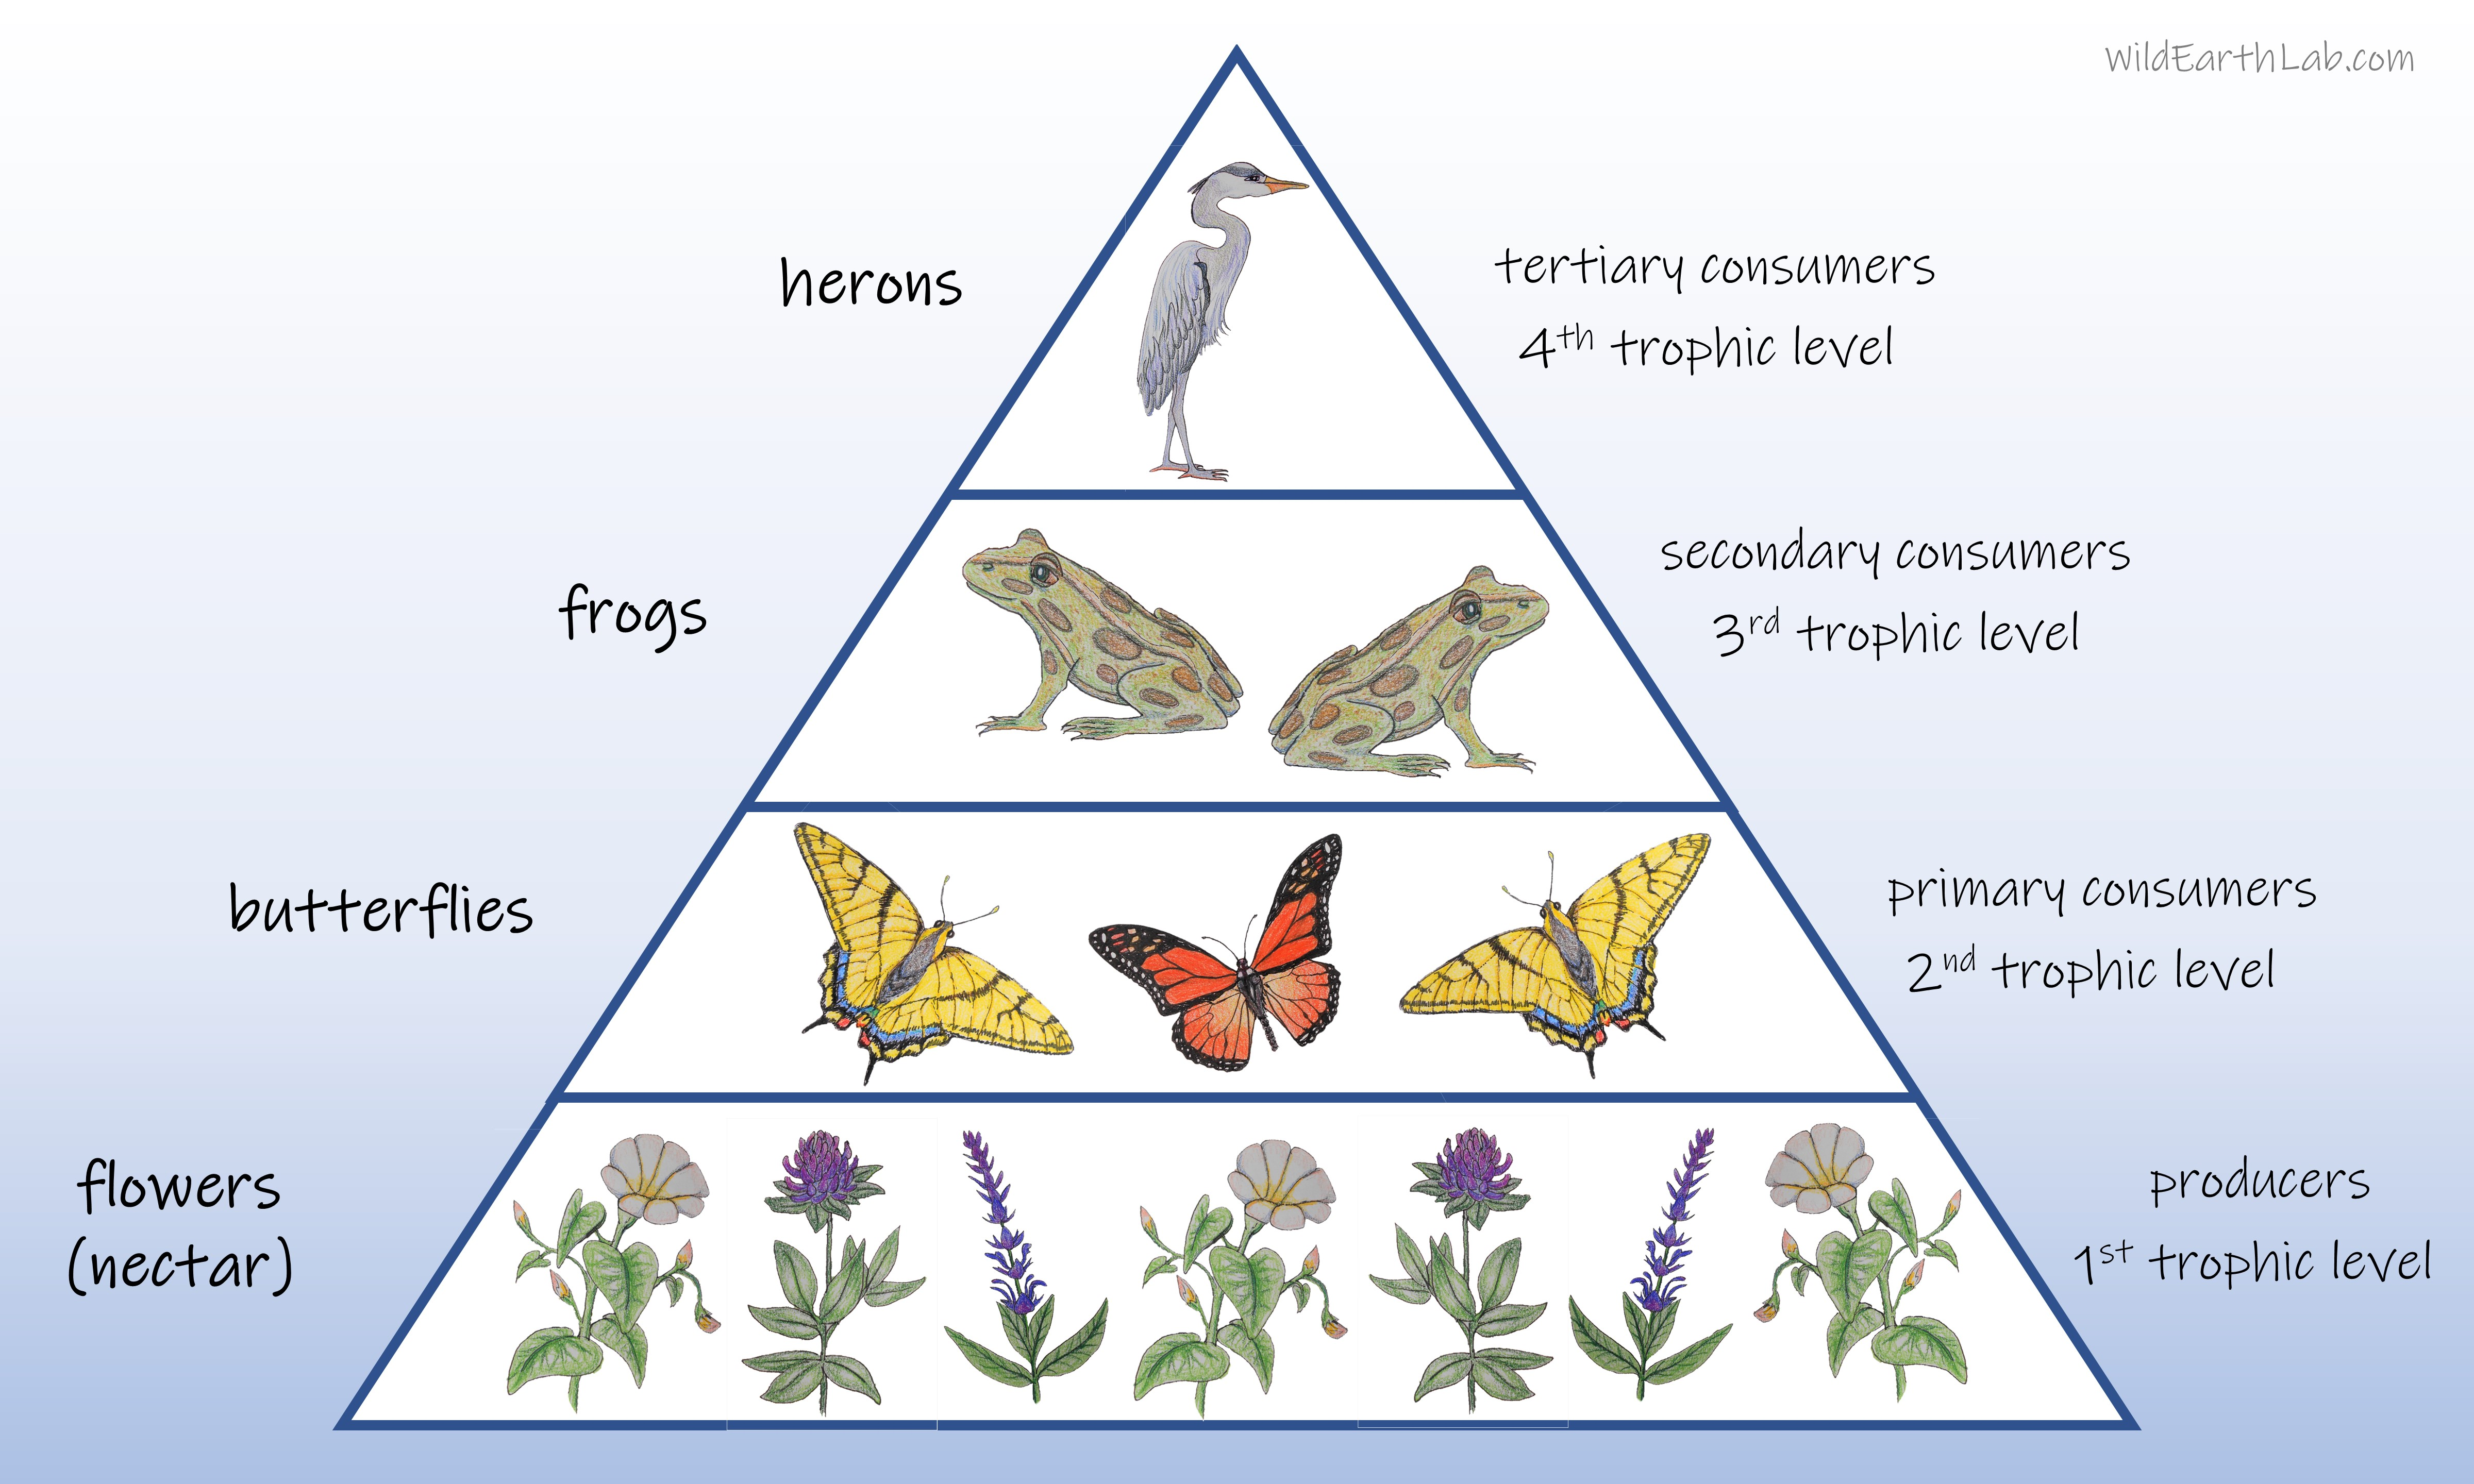 A food chain pyramid diagram with labels